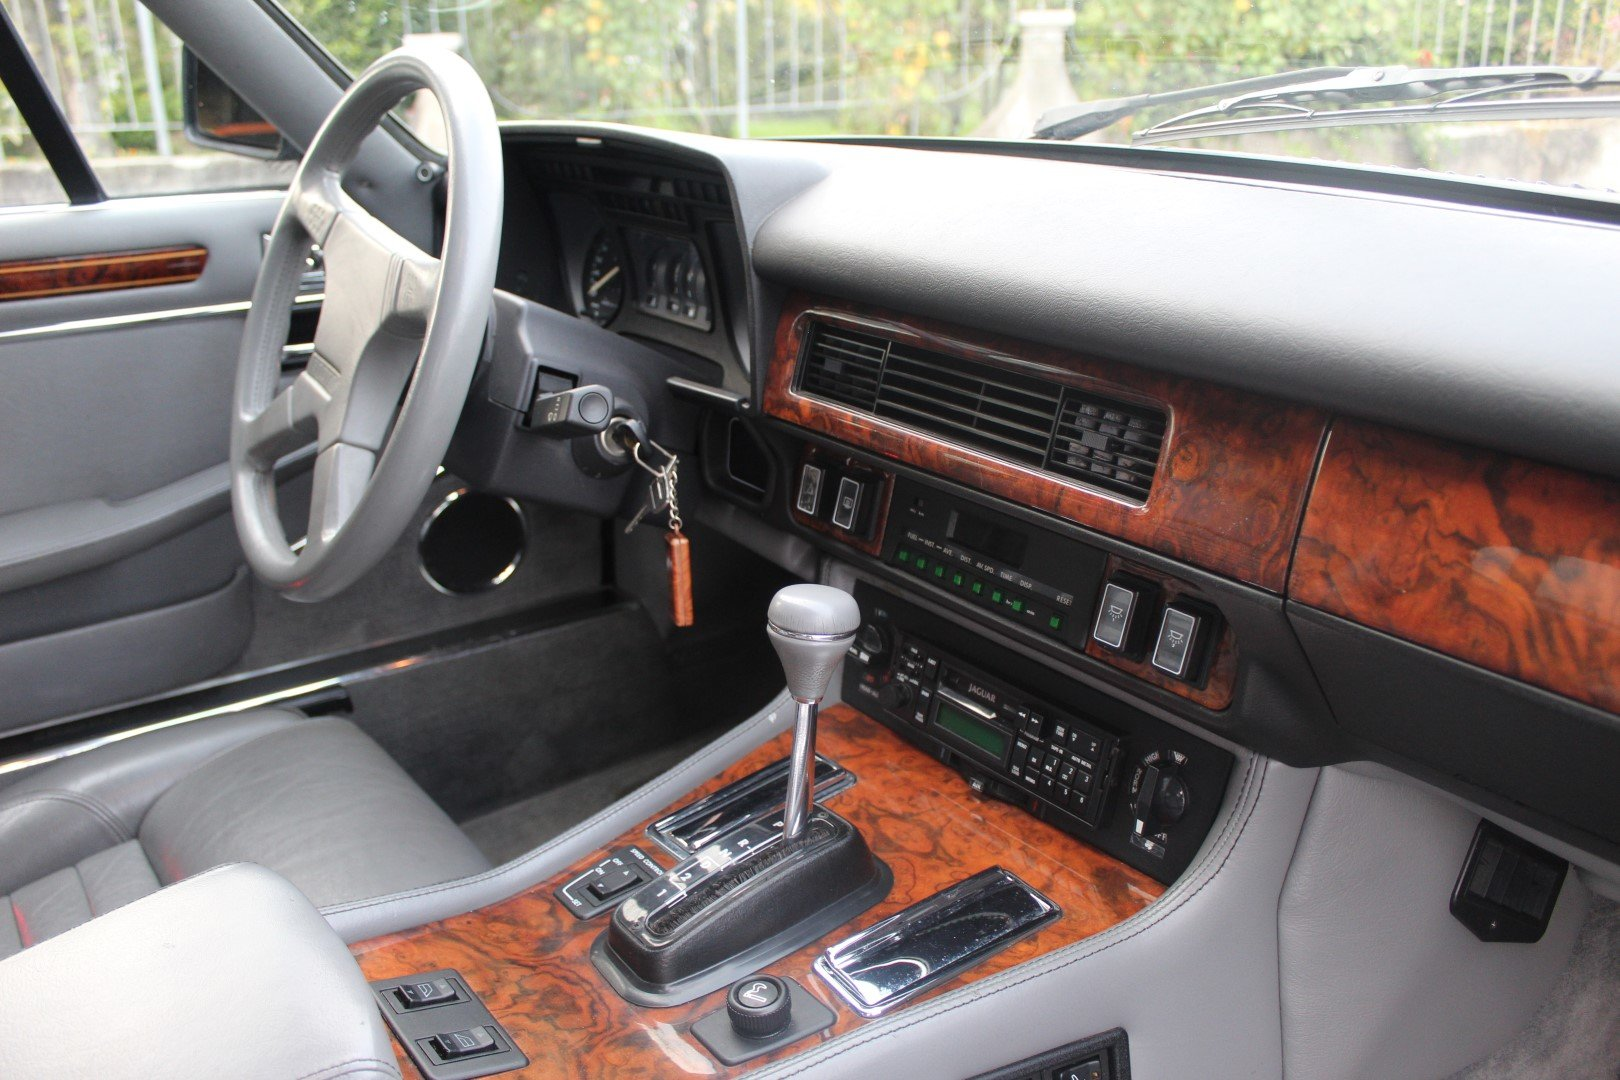 1990 Jaguar xjr-s 6.0 v12 first paint  - lhd - 324 ps For Sale (picture 4 of 6)